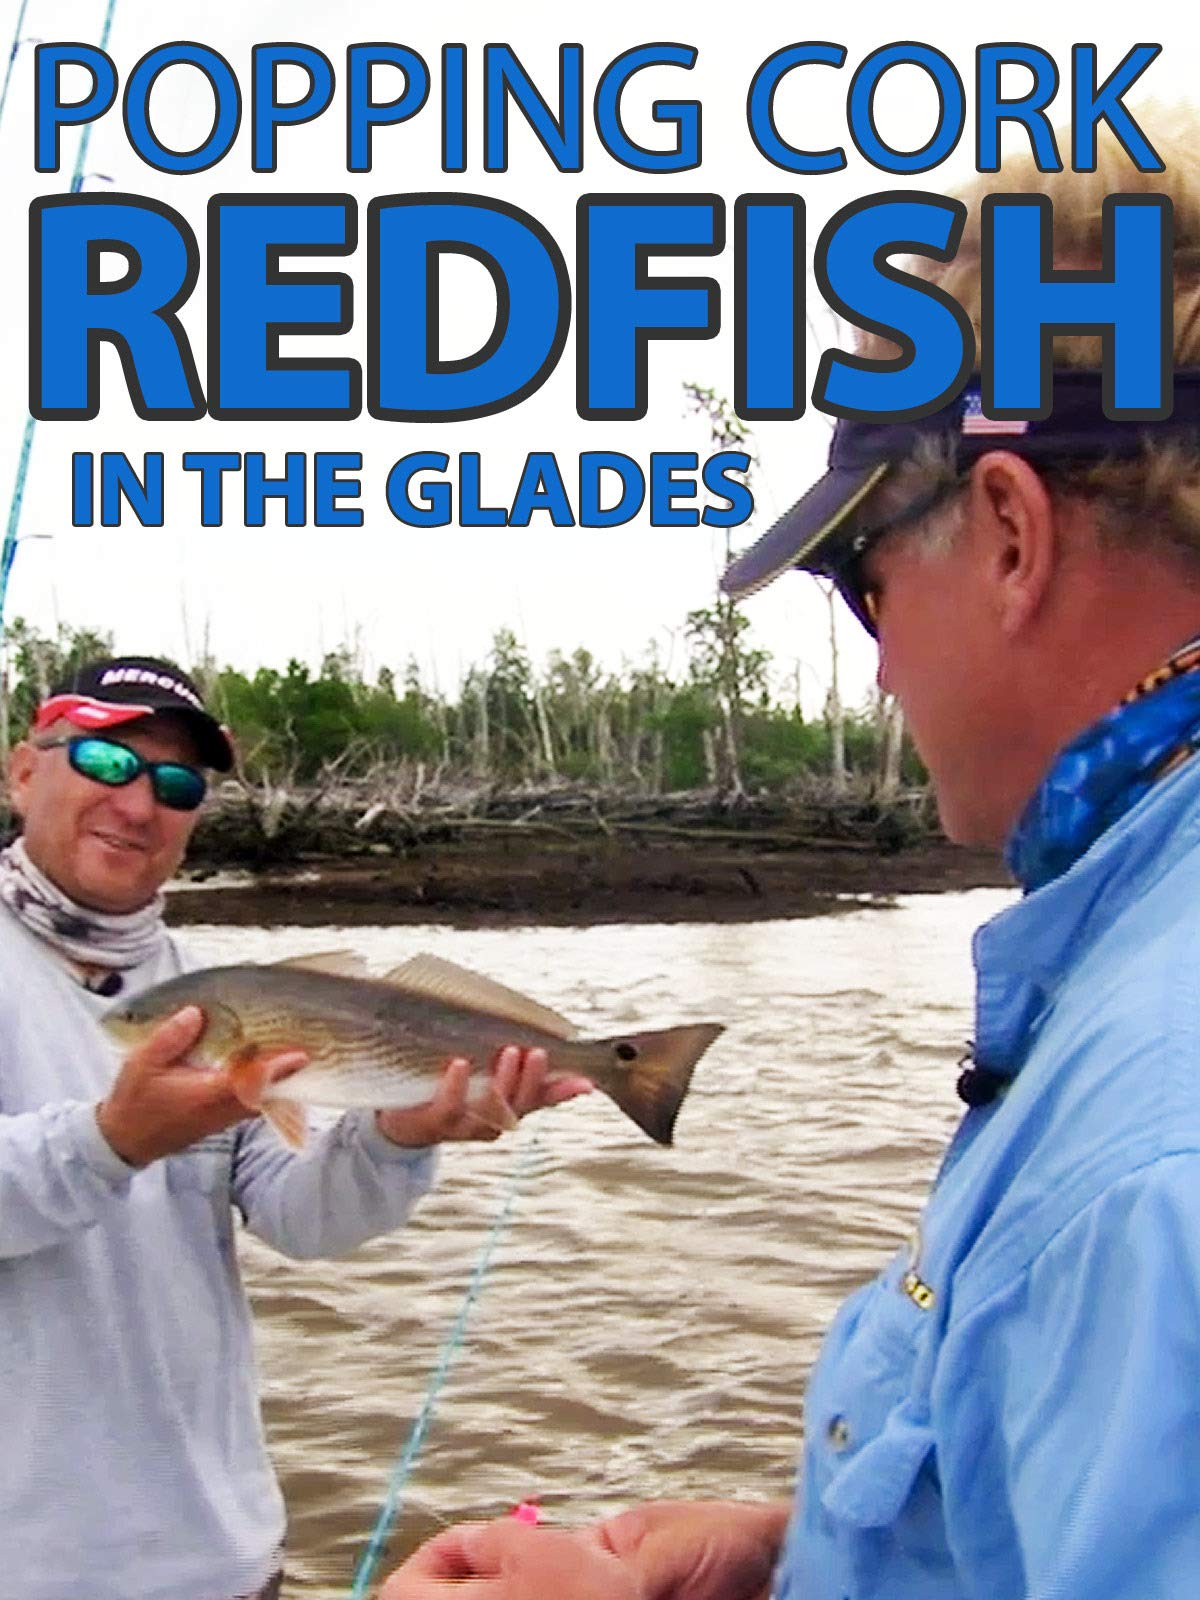 Clip: Popping Cork Redfish in the Glades